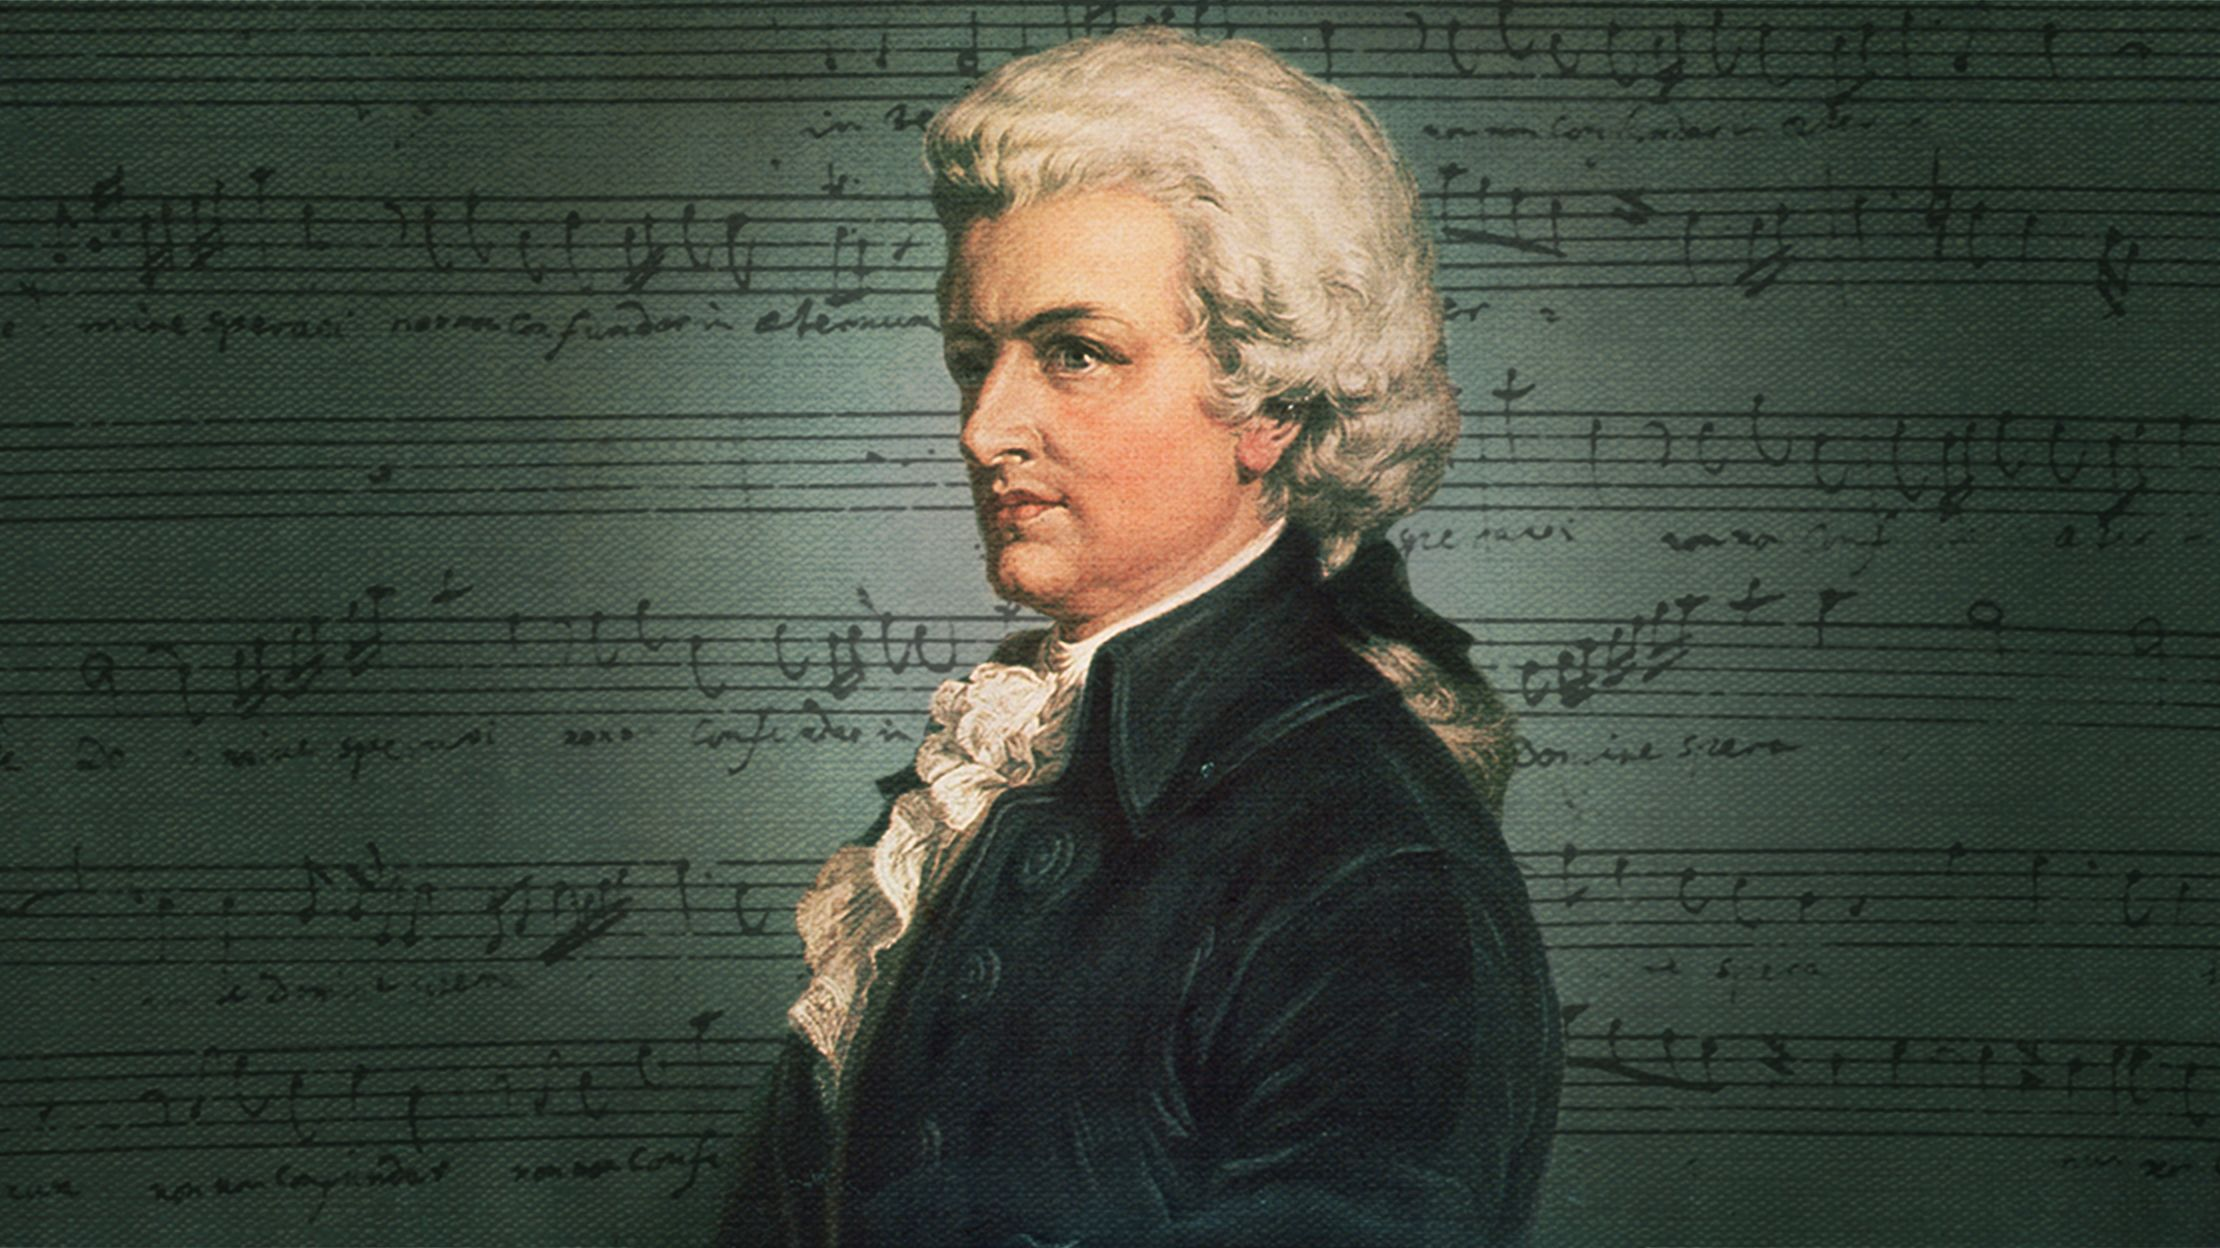 5 Days of Mozart: Day 4, Fantasia in C minor, Mozart Flipbook & a Fun Mozart Quiz